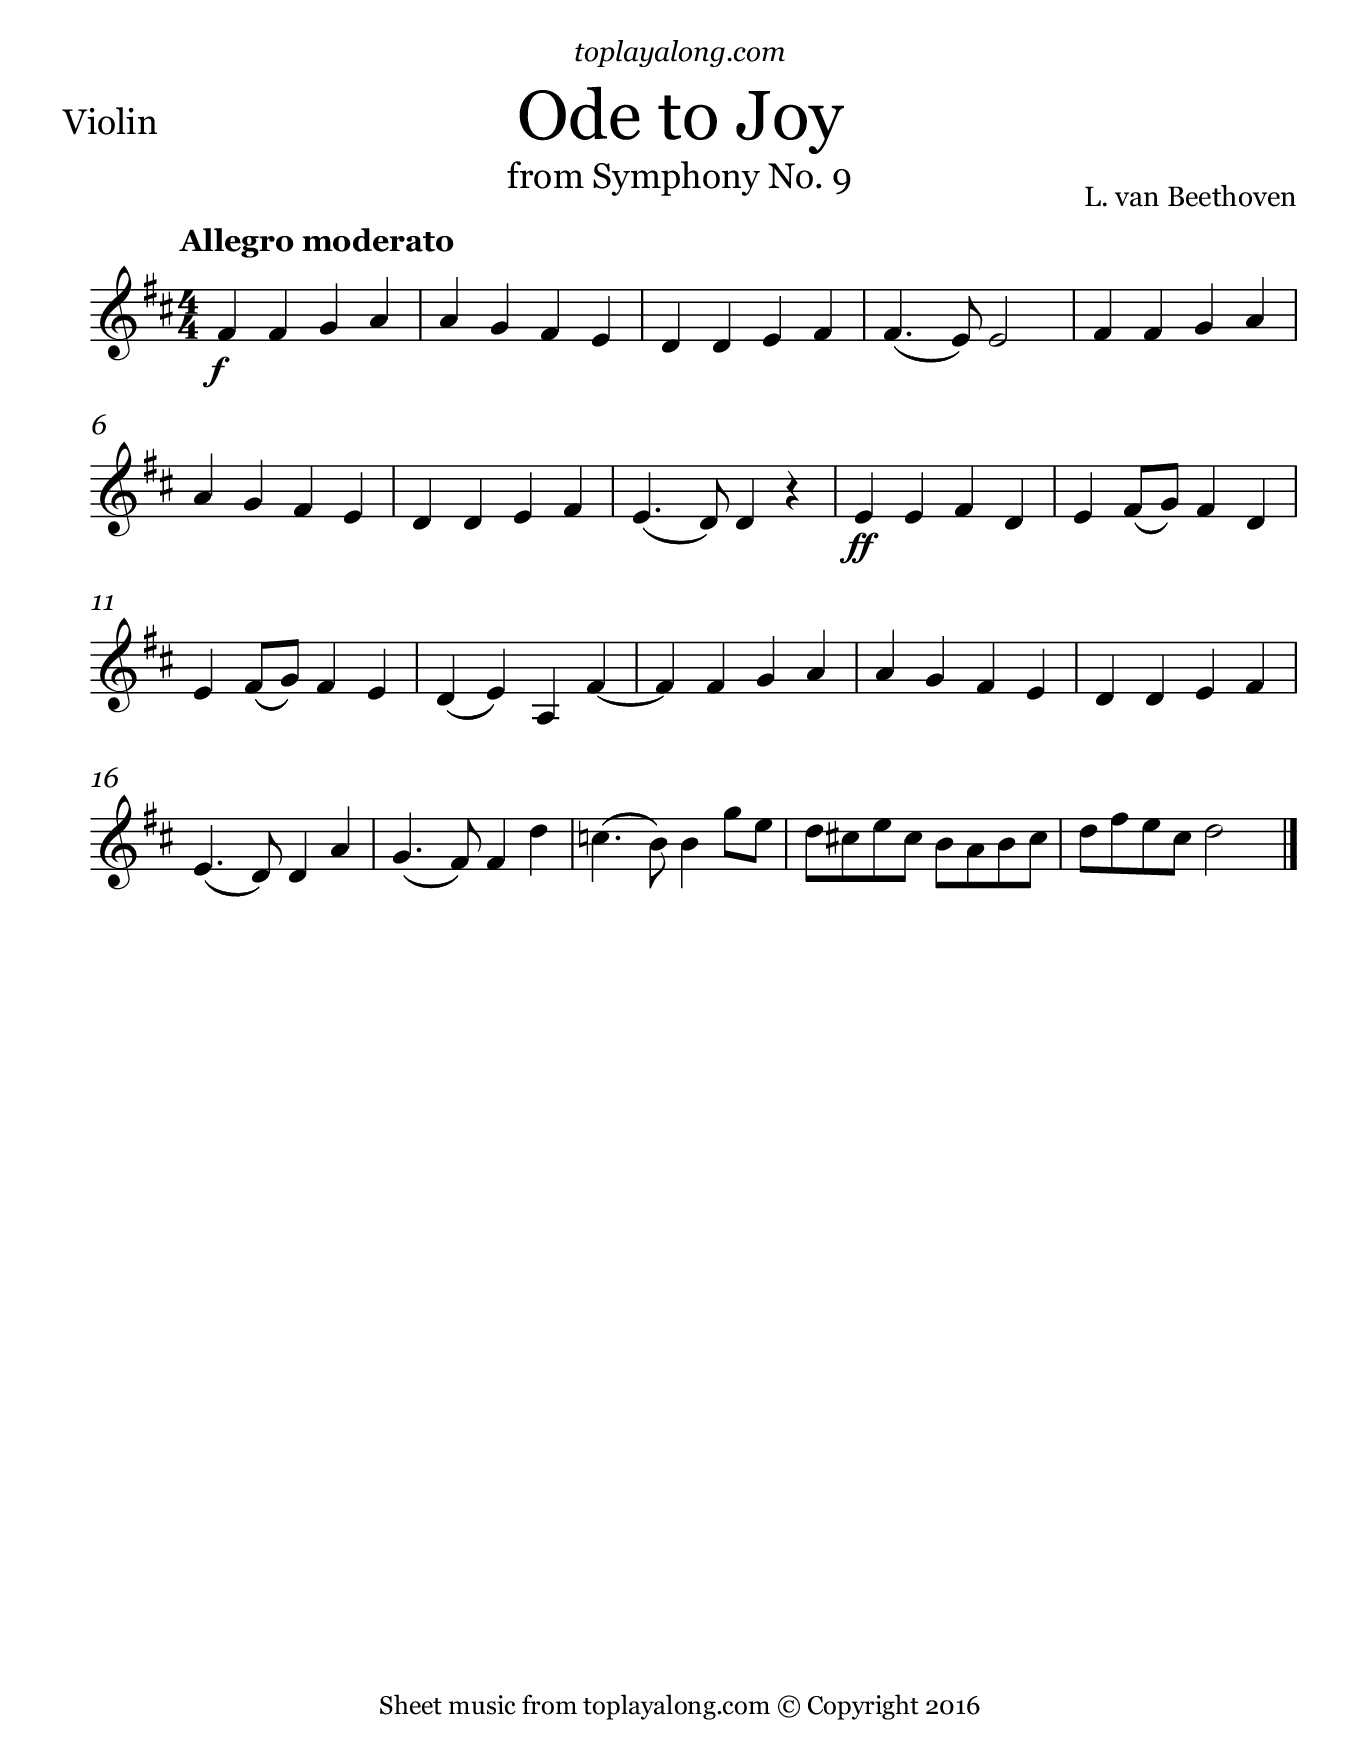 Ode to Joy from Symphony No. 9 by Beethoven. Sheet music for Violin, page 1.